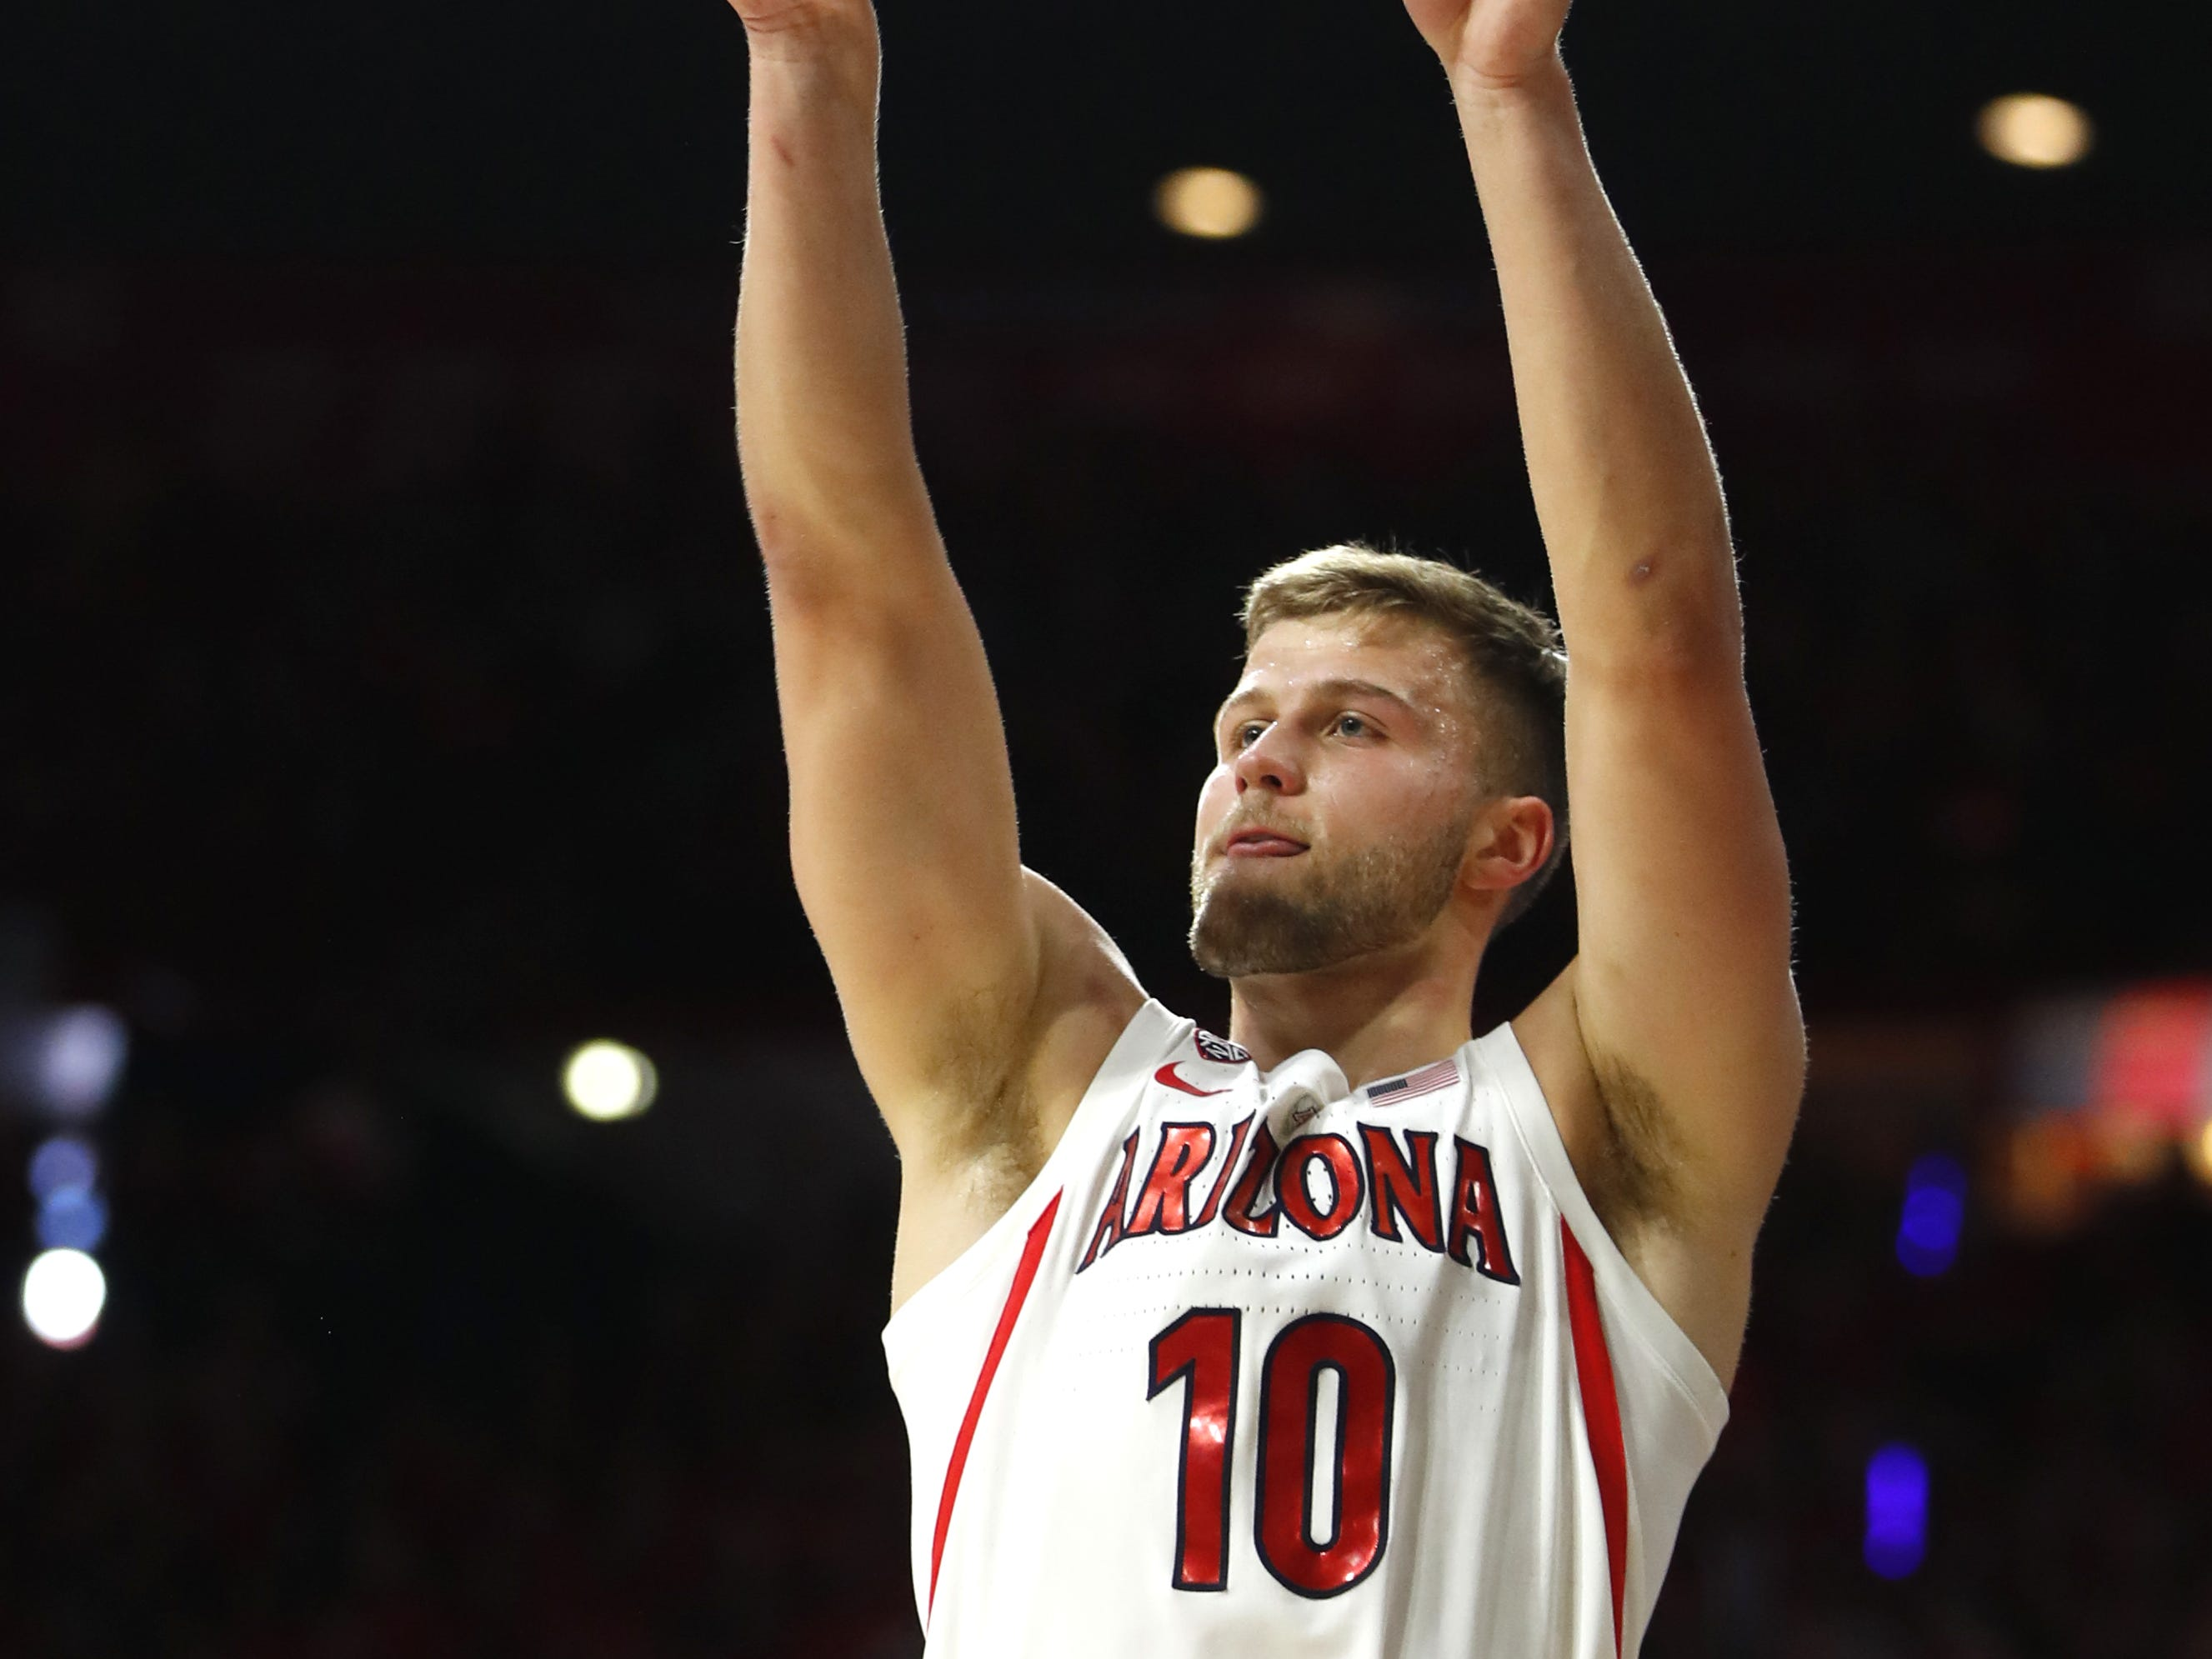 Arizona's Ryan Luther (10) shoots a three pointer against ASU during the first half at the McKale Memorial Center in Tucson, Ariz. on March 9, 2019.